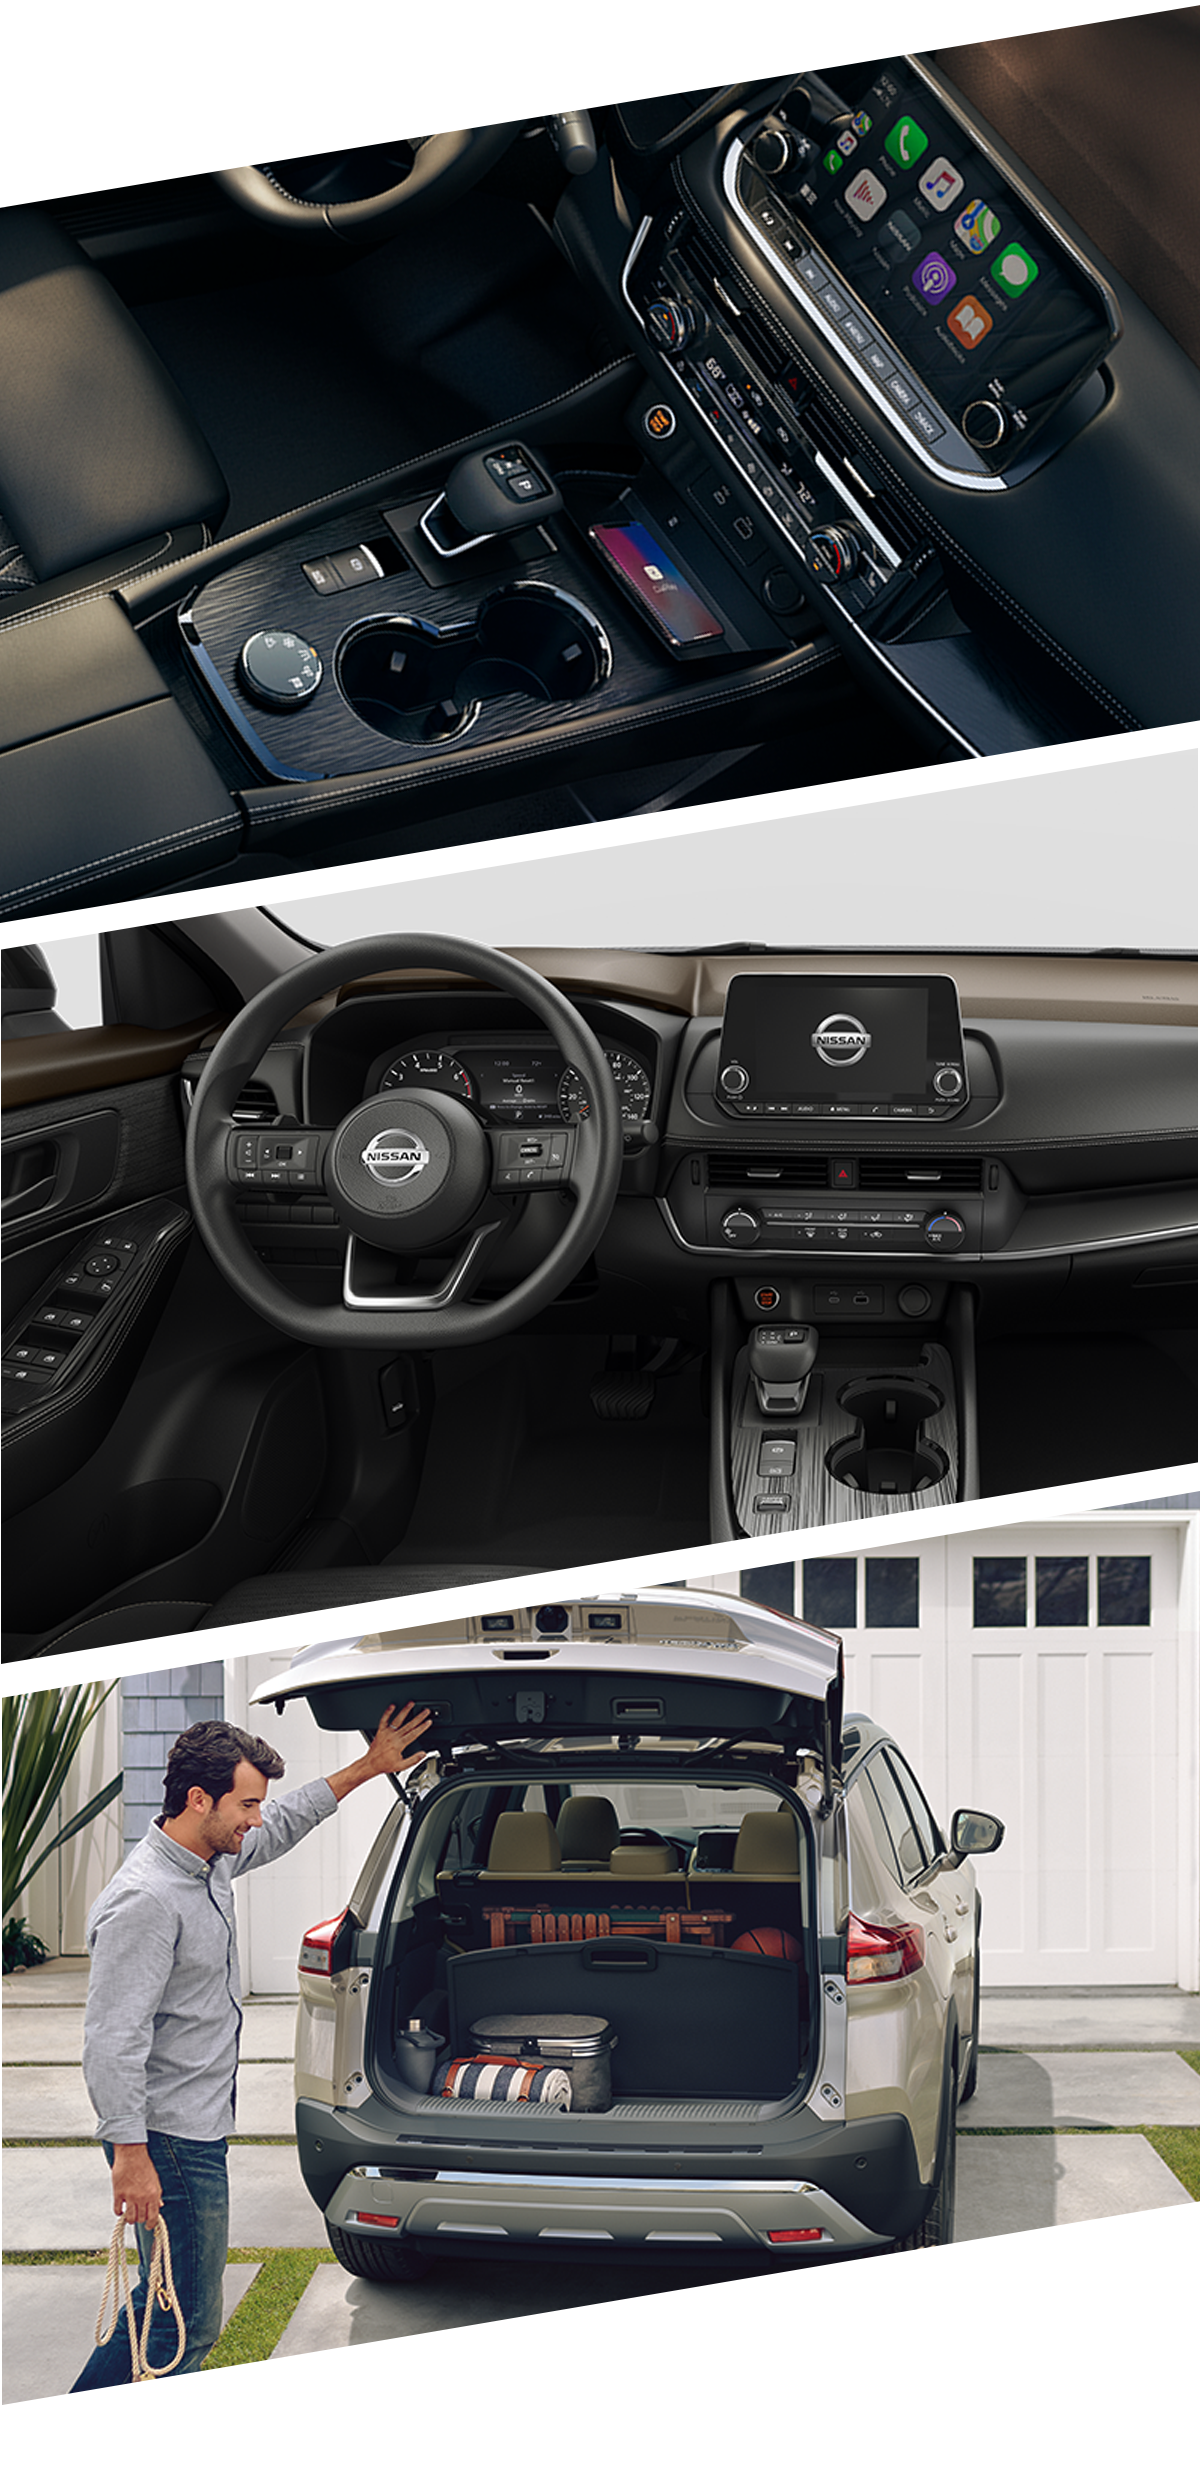 2021 Nissan Rogue Interior Images in Fort Walton Beach, FL